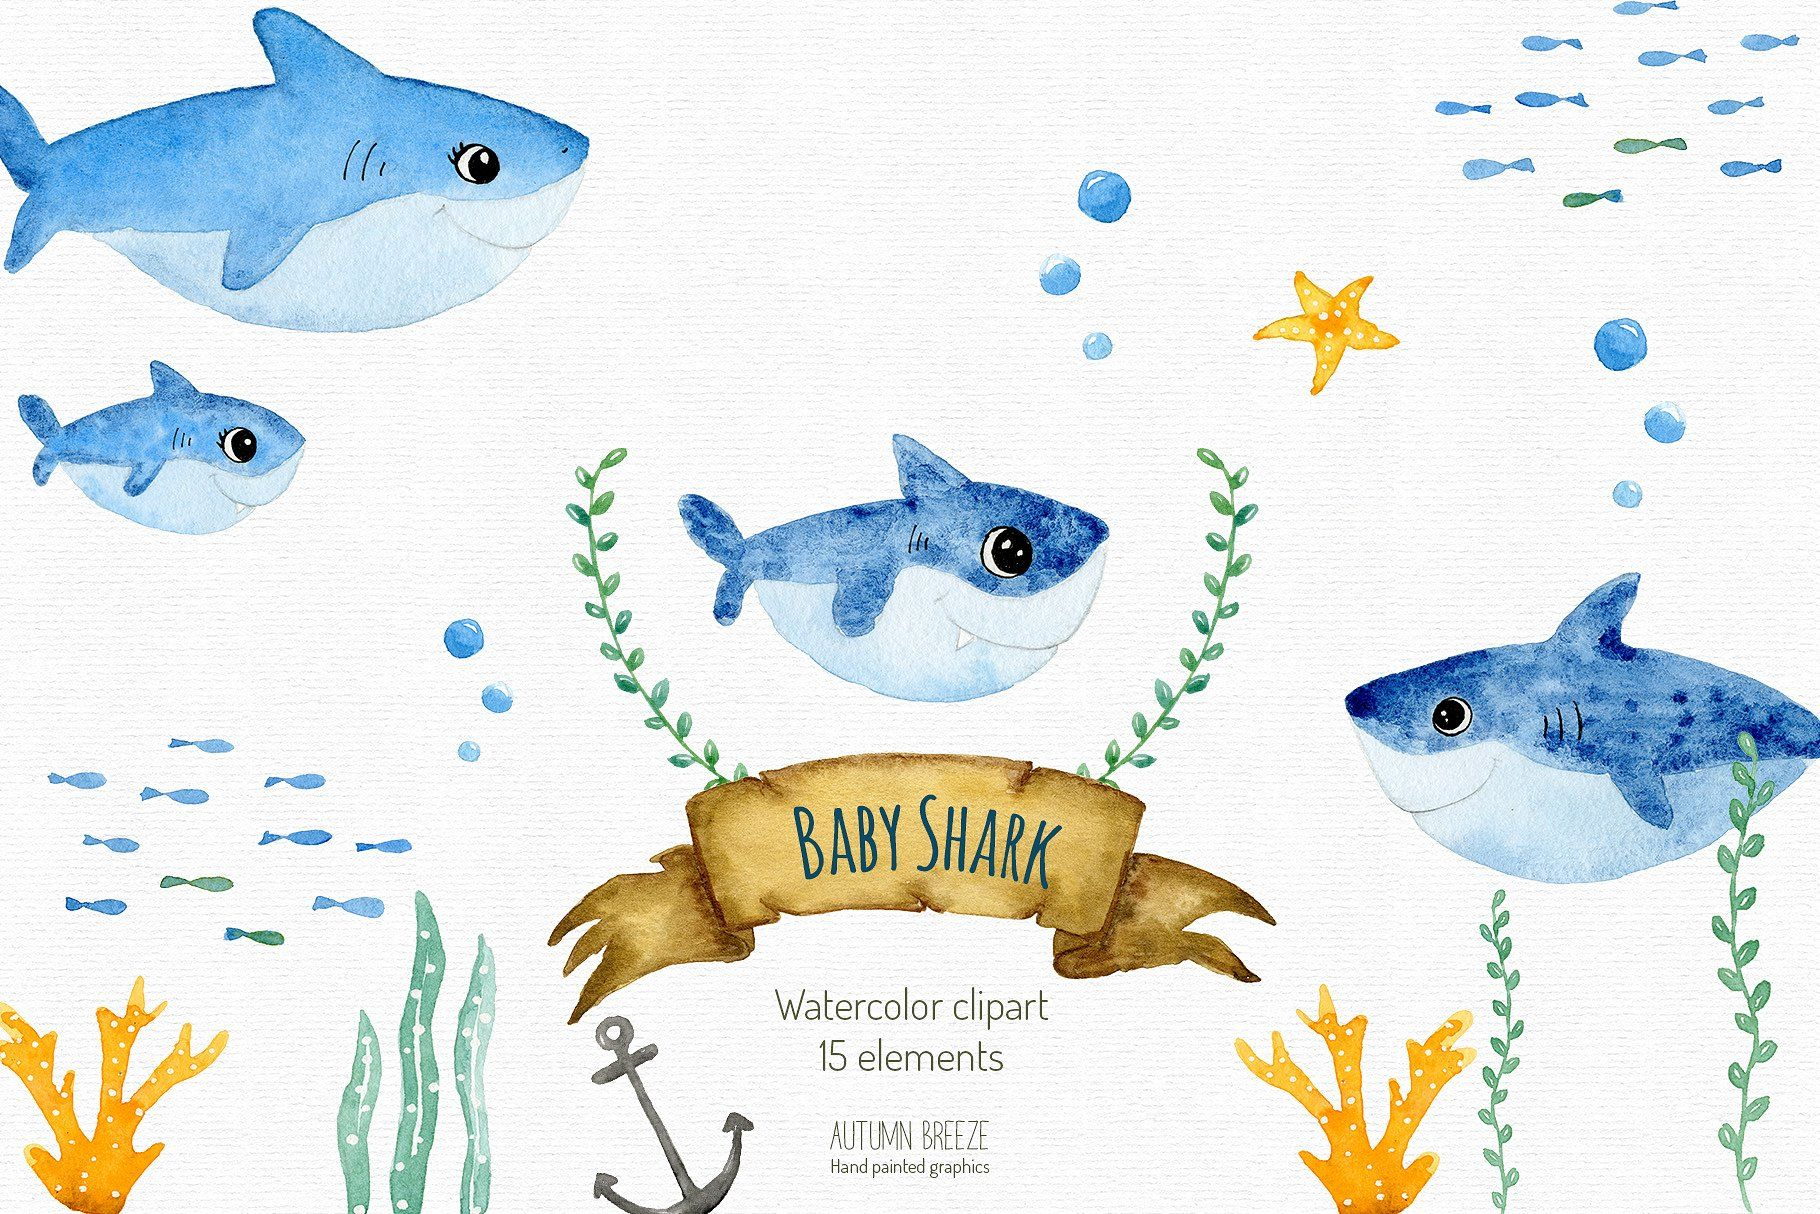 Baby shark clipart savedbackgroundHighindividually Vectors 1820x1214